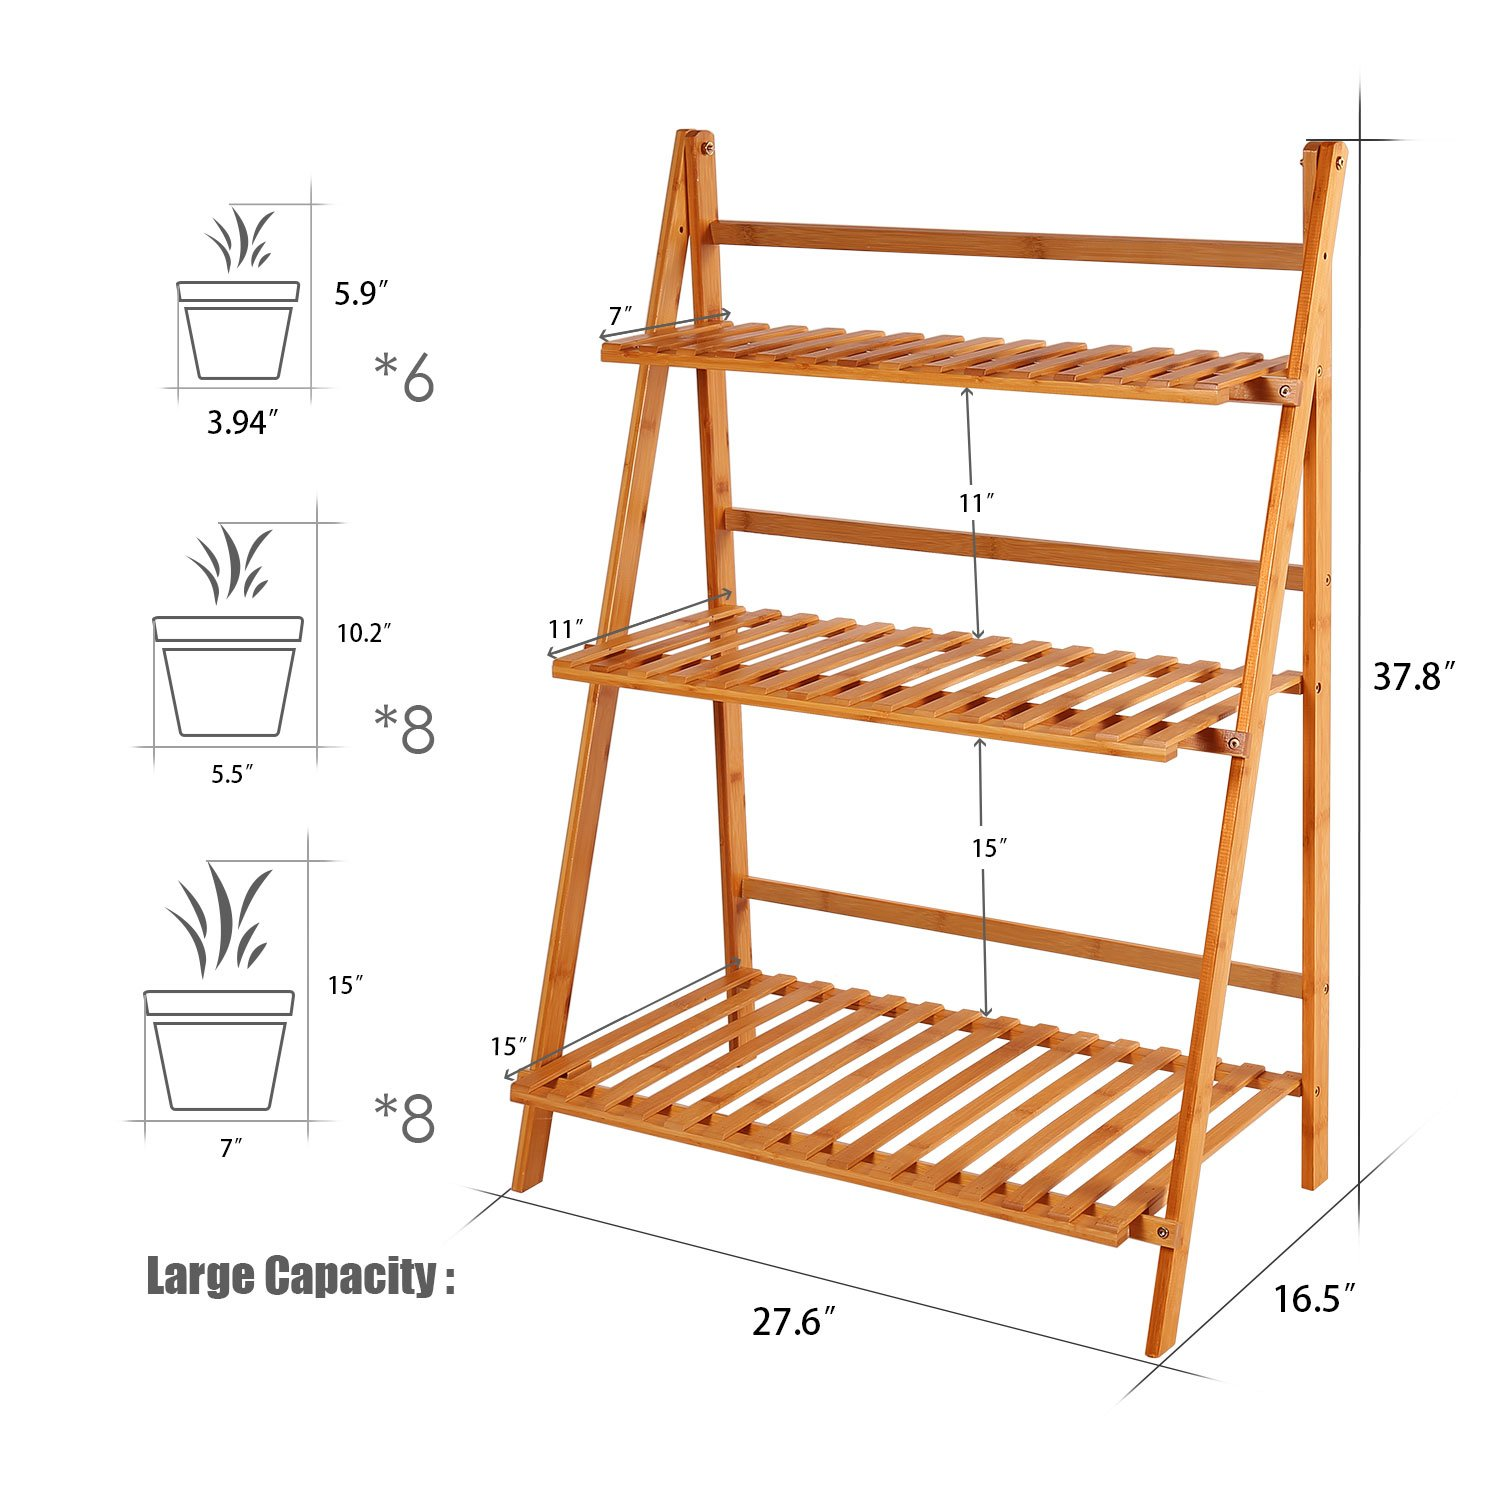 Amazoncom Ufine Bamboo Wood Ladder Plant Stand 3 Tier Foldable Flower